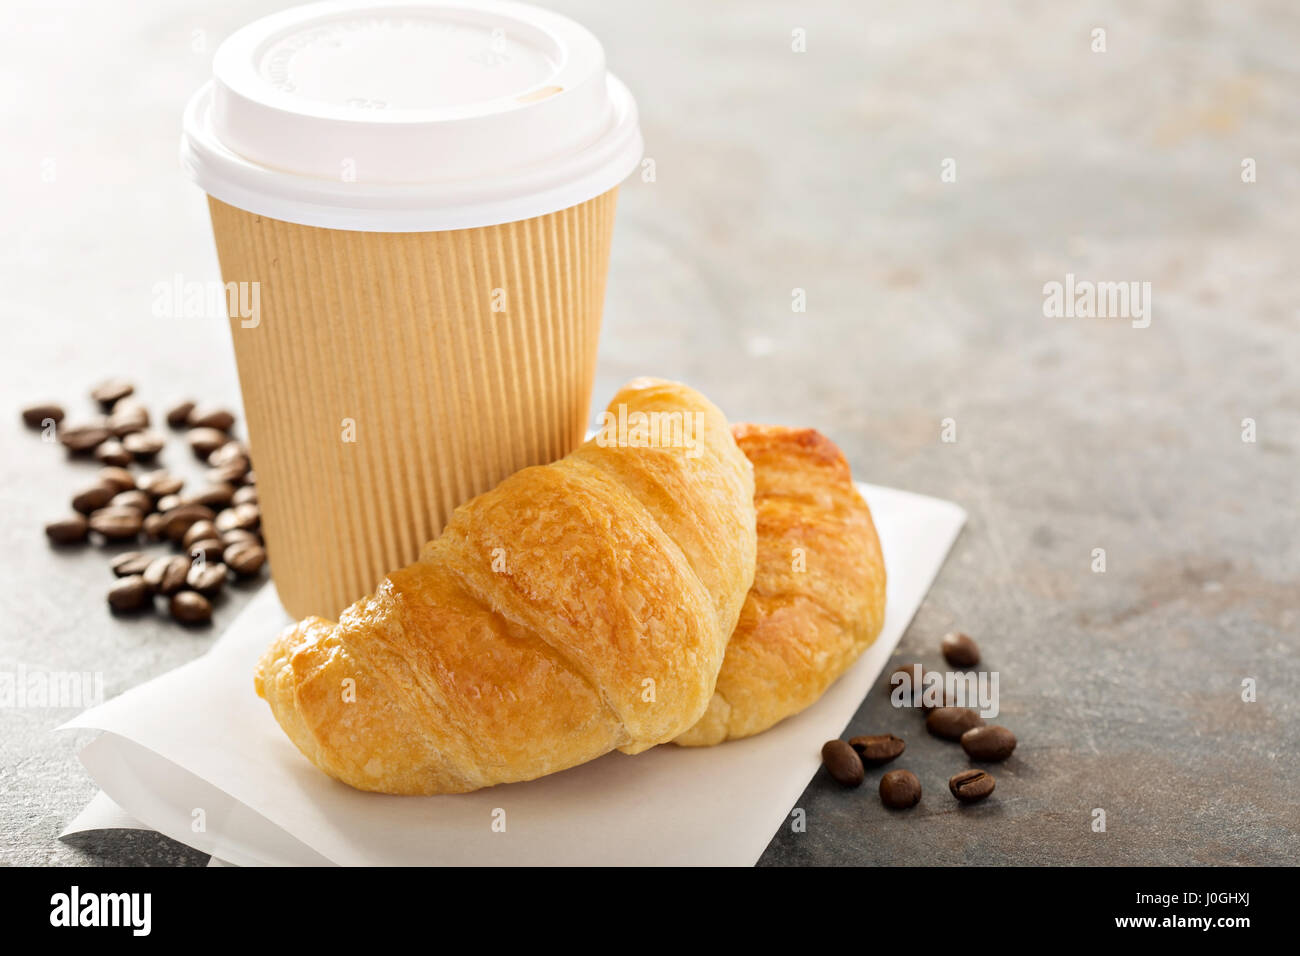 Croissants with coffee to go - Stock Image